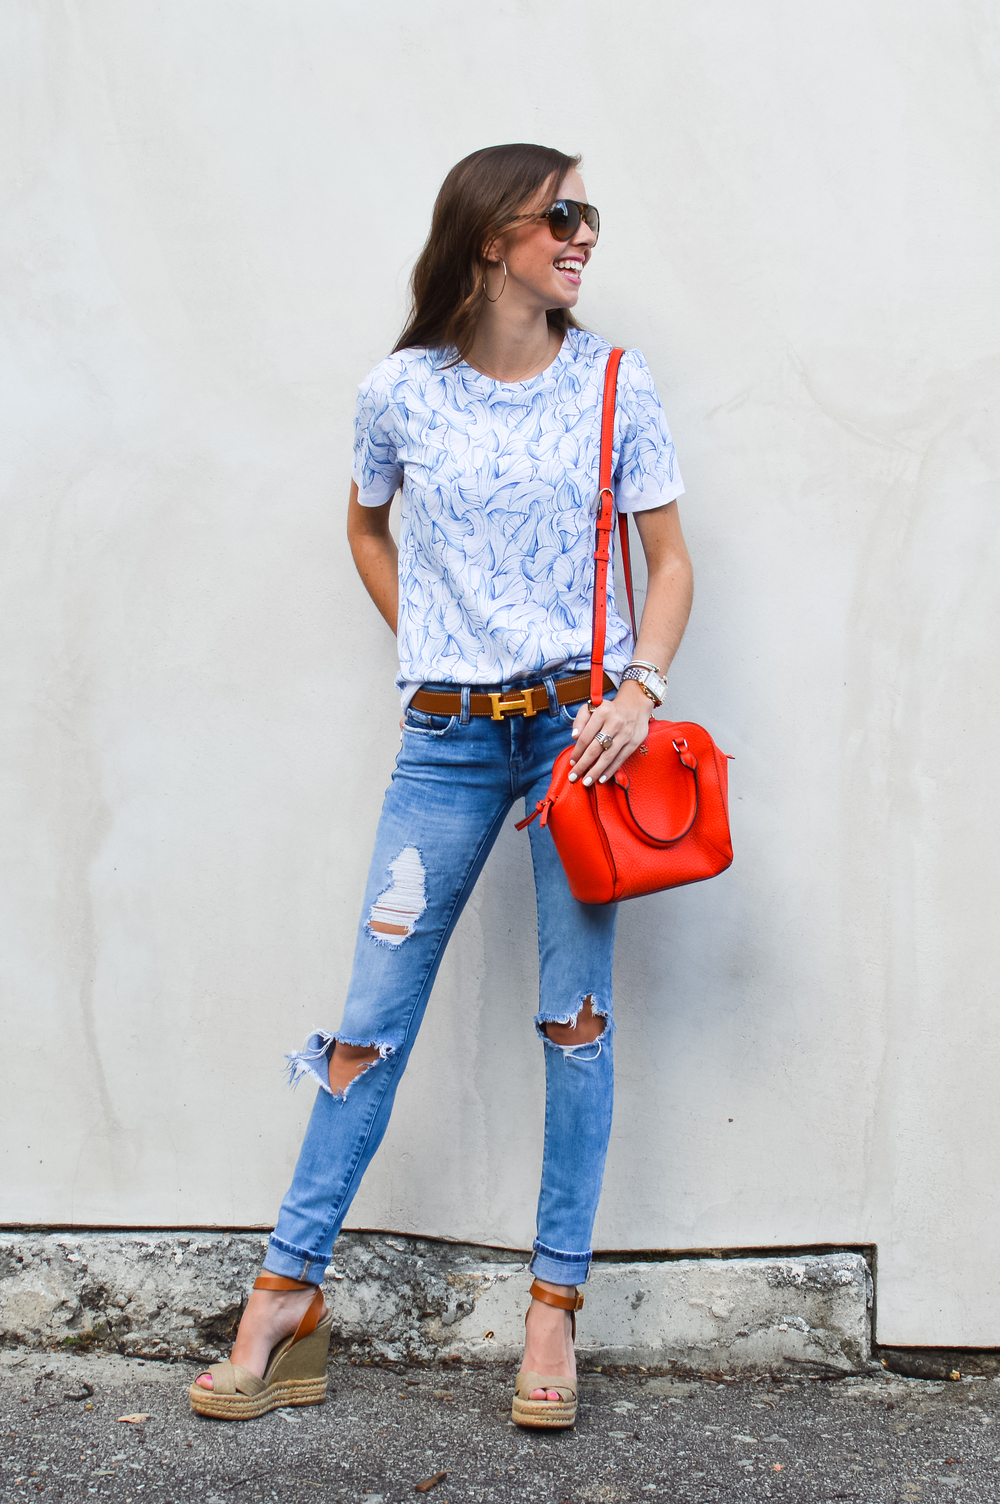 lcb_style_fashion_blogger_tory burch top (1 of 29).jpg